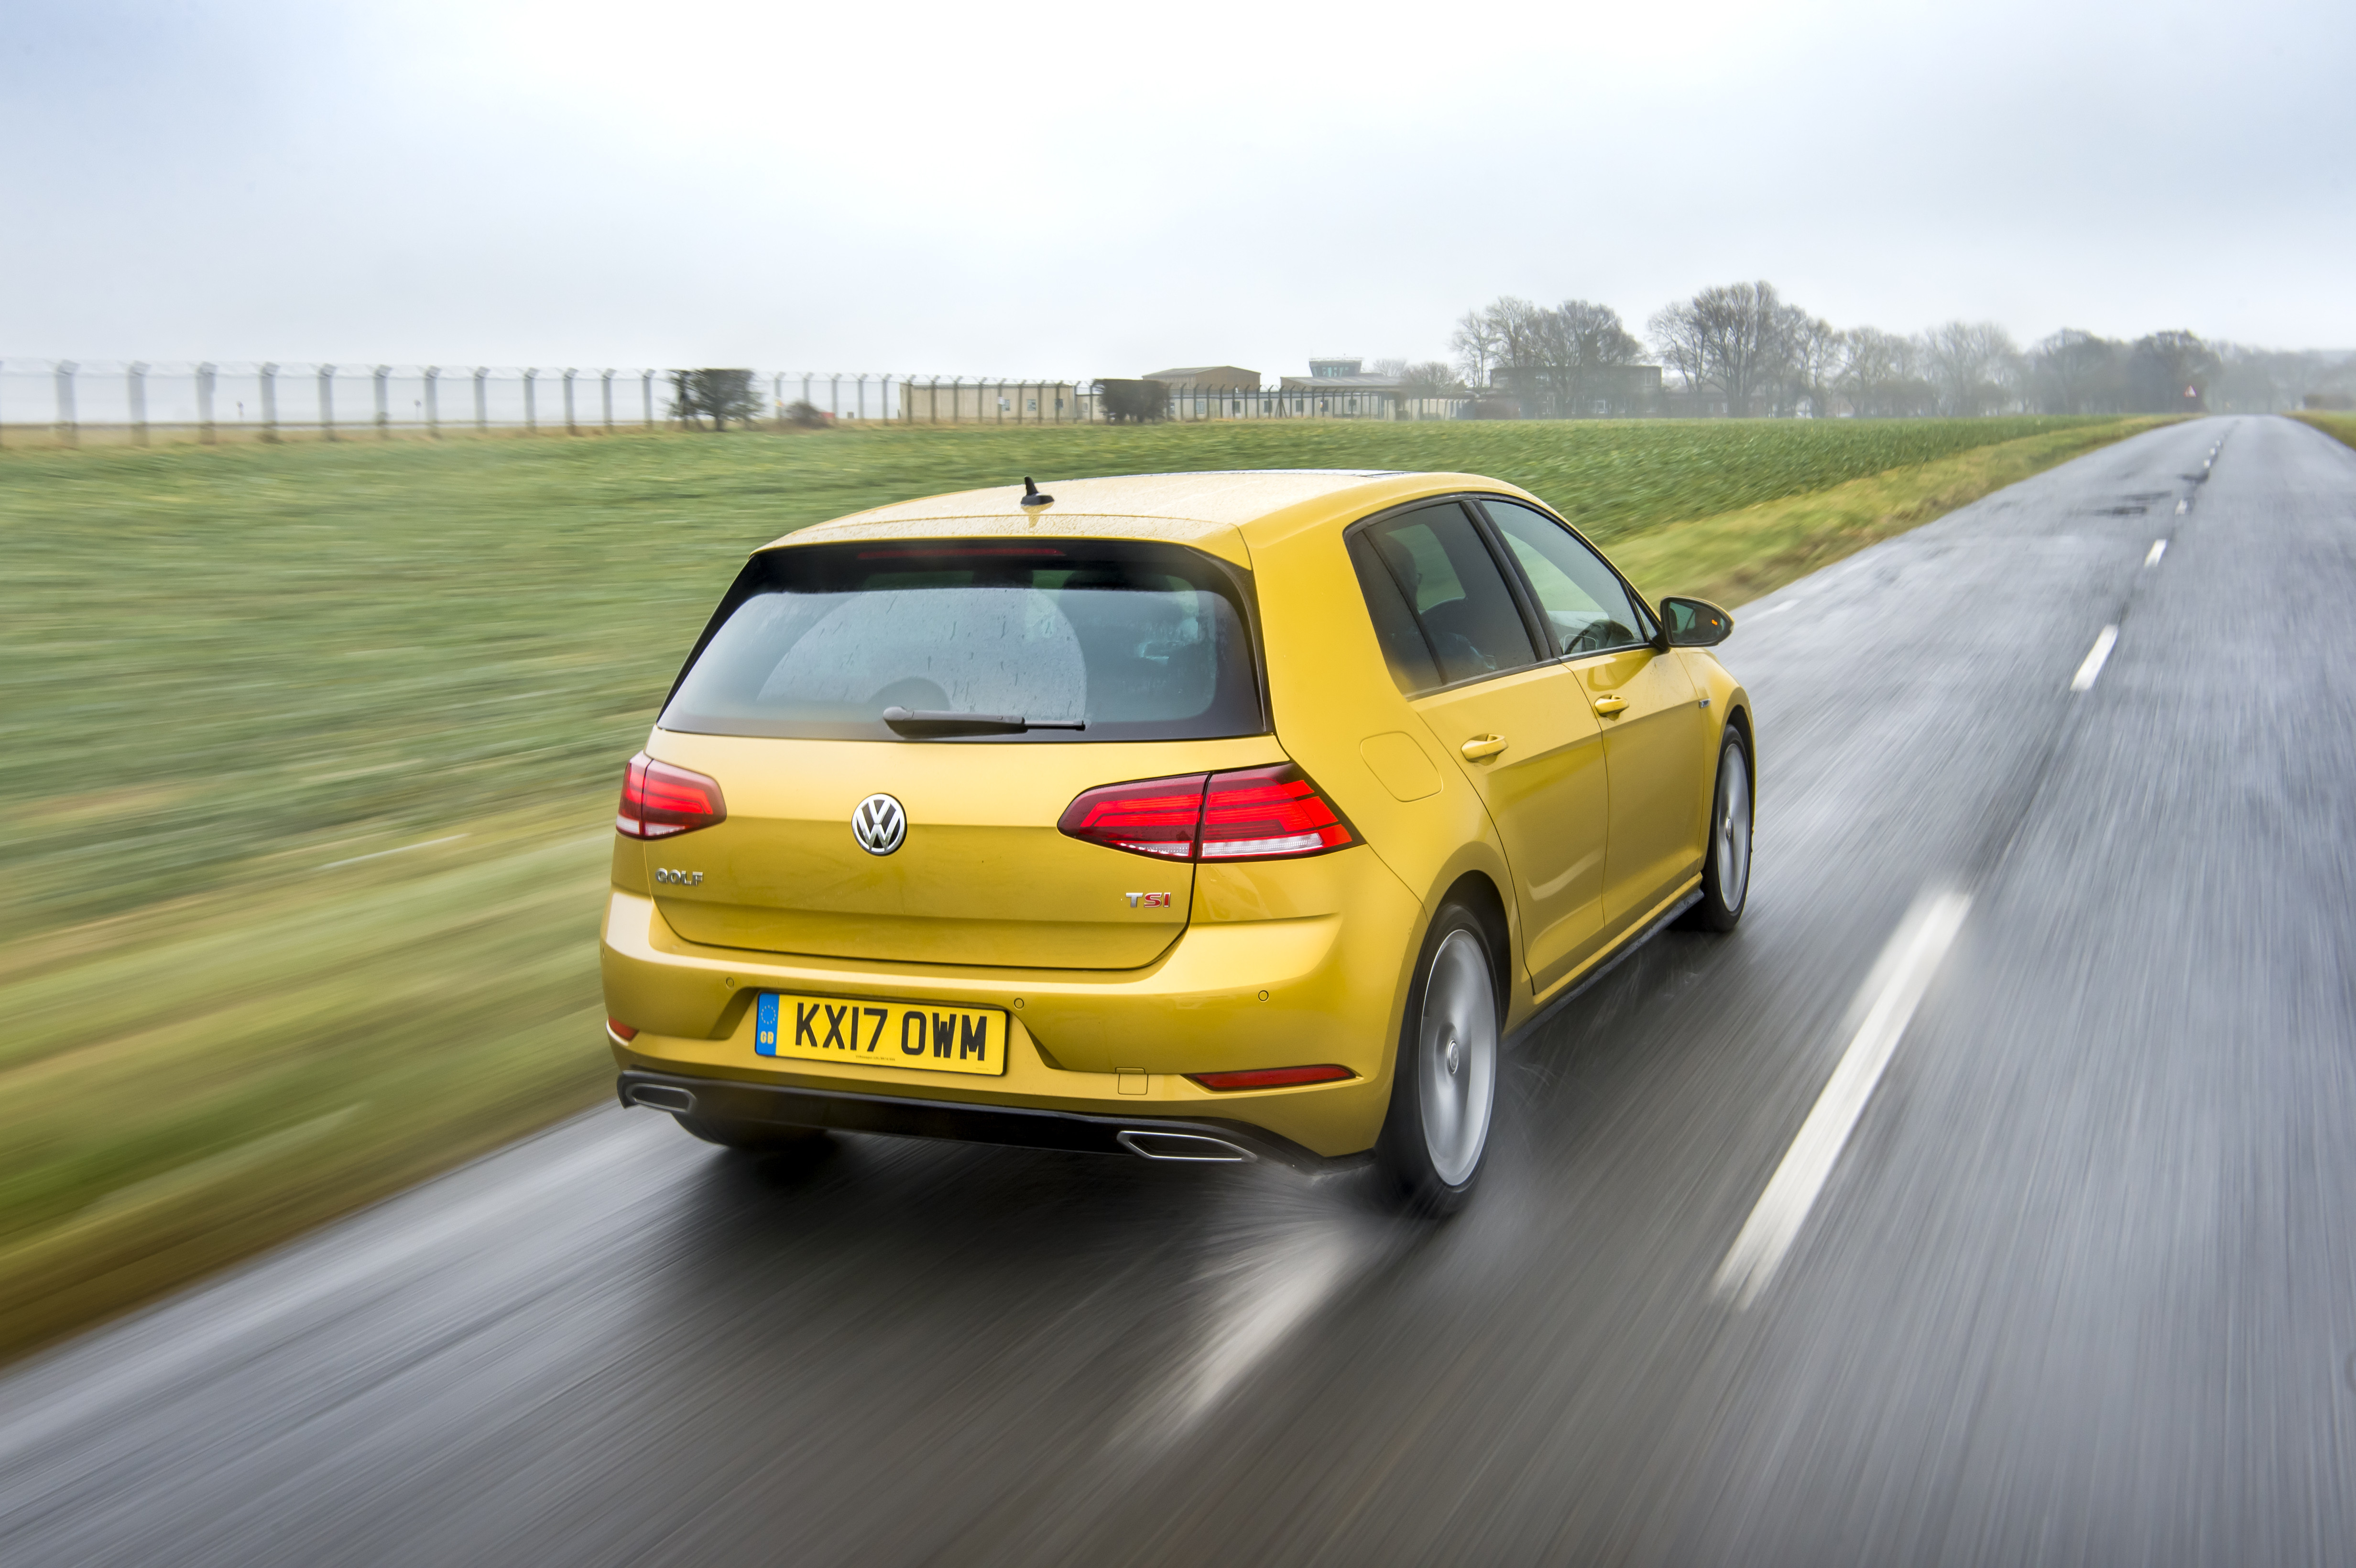 Rear view of a yellow Golf R Line driving on a road